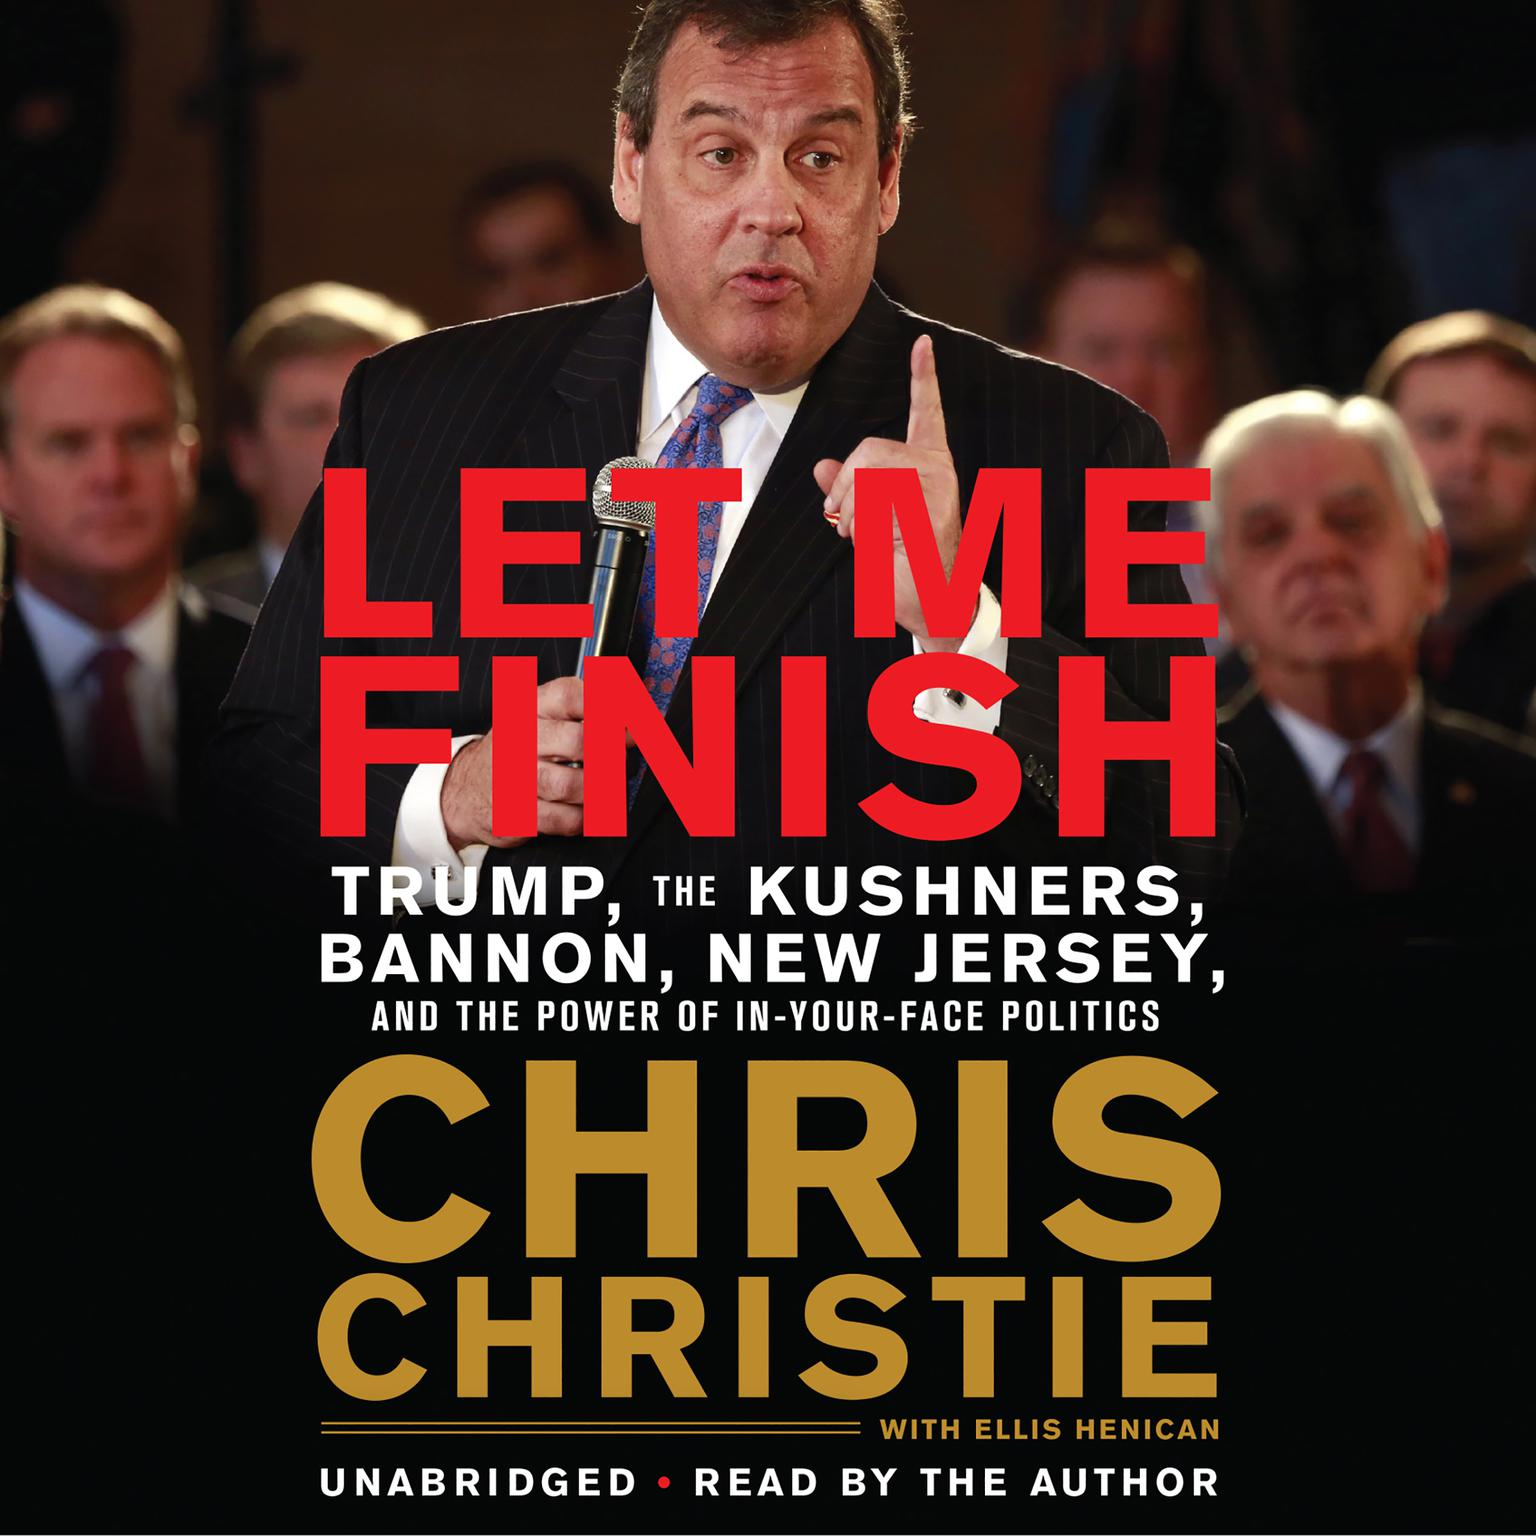 Let Me Finish: Trump, the Kushners, Bannon, New Jersey, and the Power of In-Your-Face Politics Audiobook, by Chris Christie